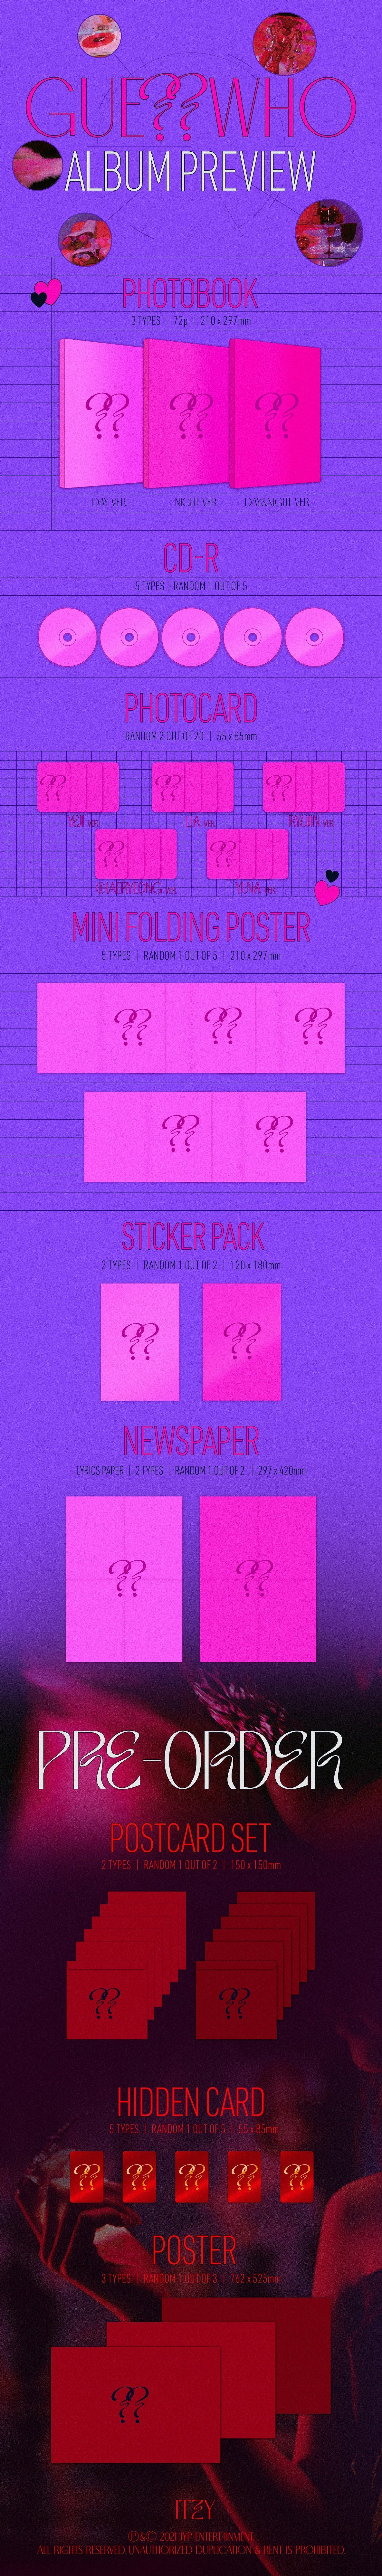 ITZY Album [GUESS WHO]Infographic